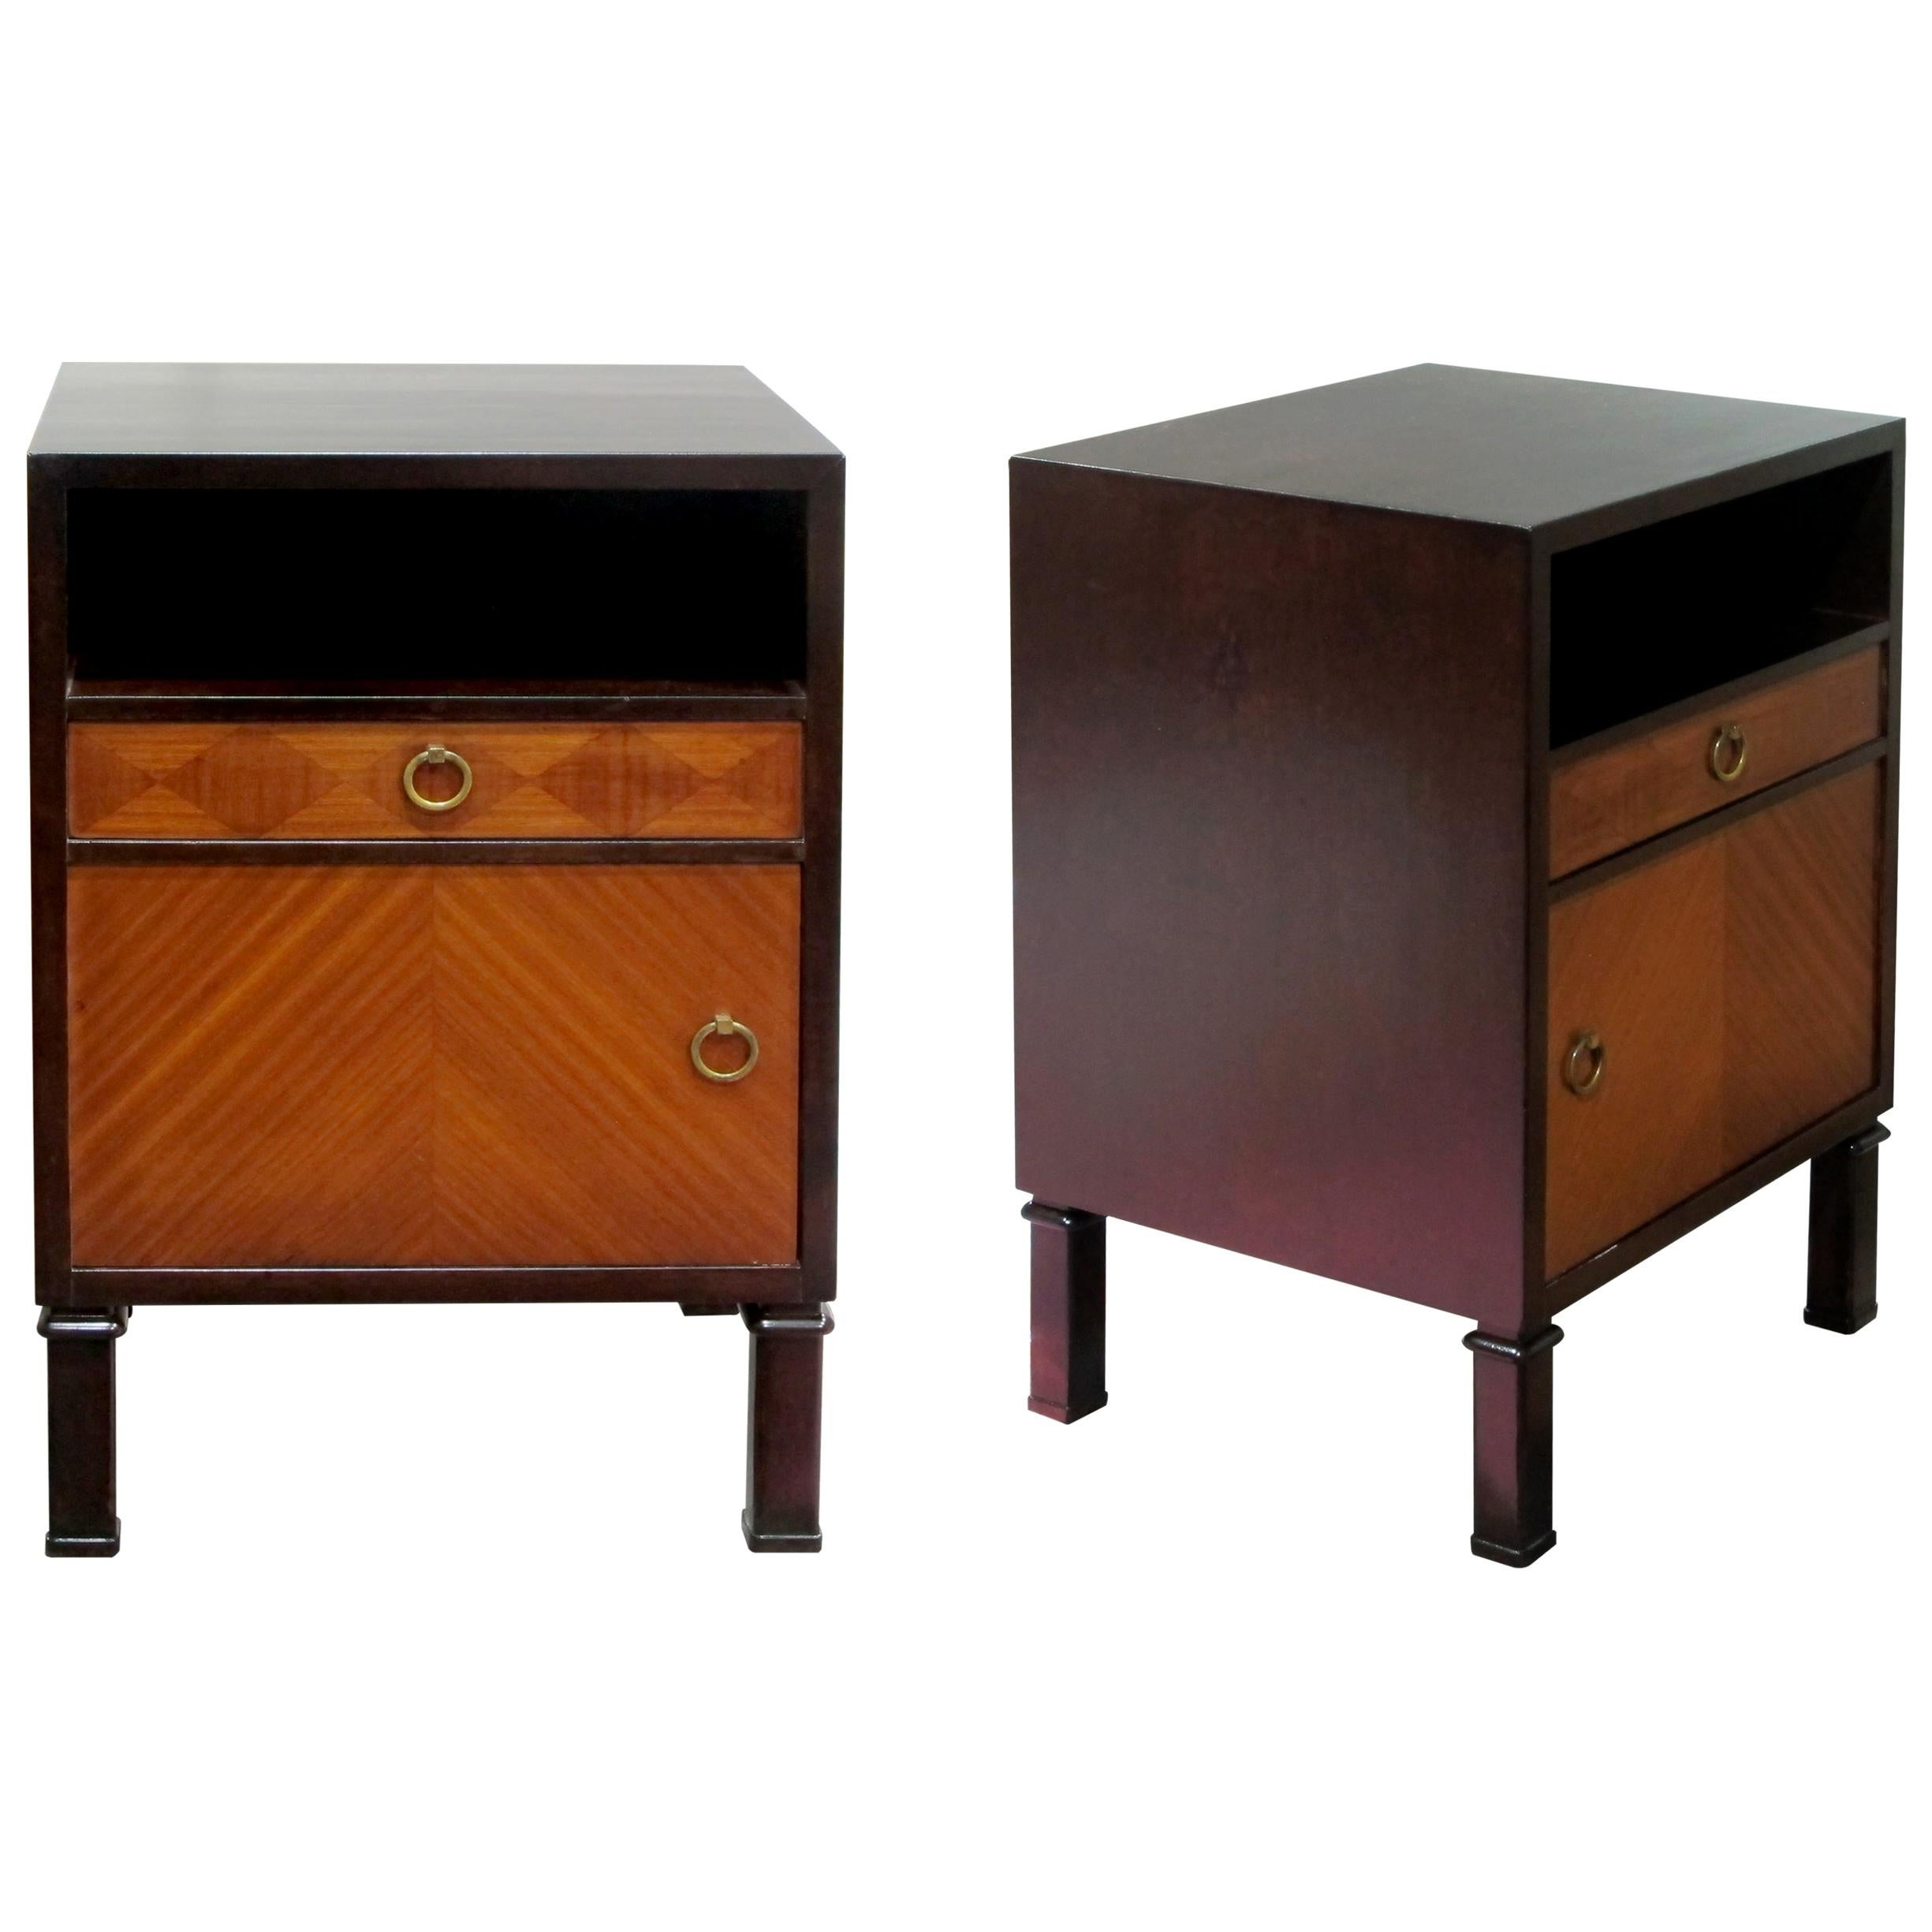 Pair of 1940s Swedish Axel Larsson Nightstands Bedside Tables for SMF Bodafors